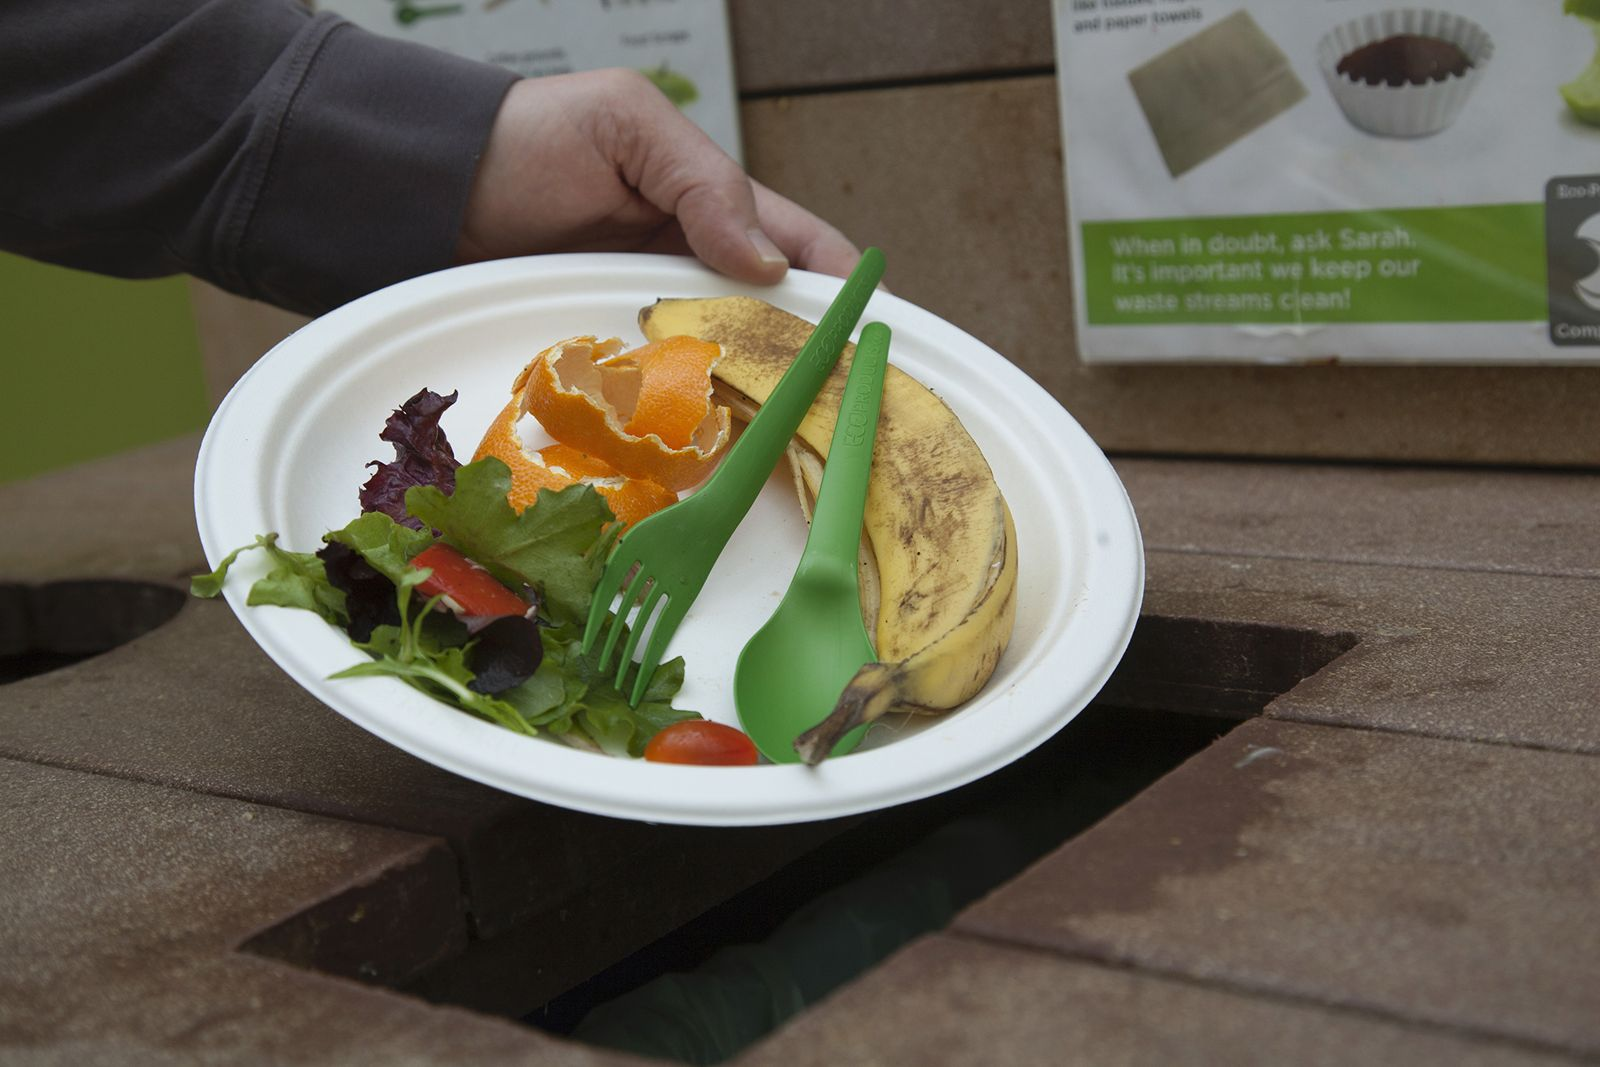 Study: Restaurants Could Capture More Food Waste and Reduce Climate Impact